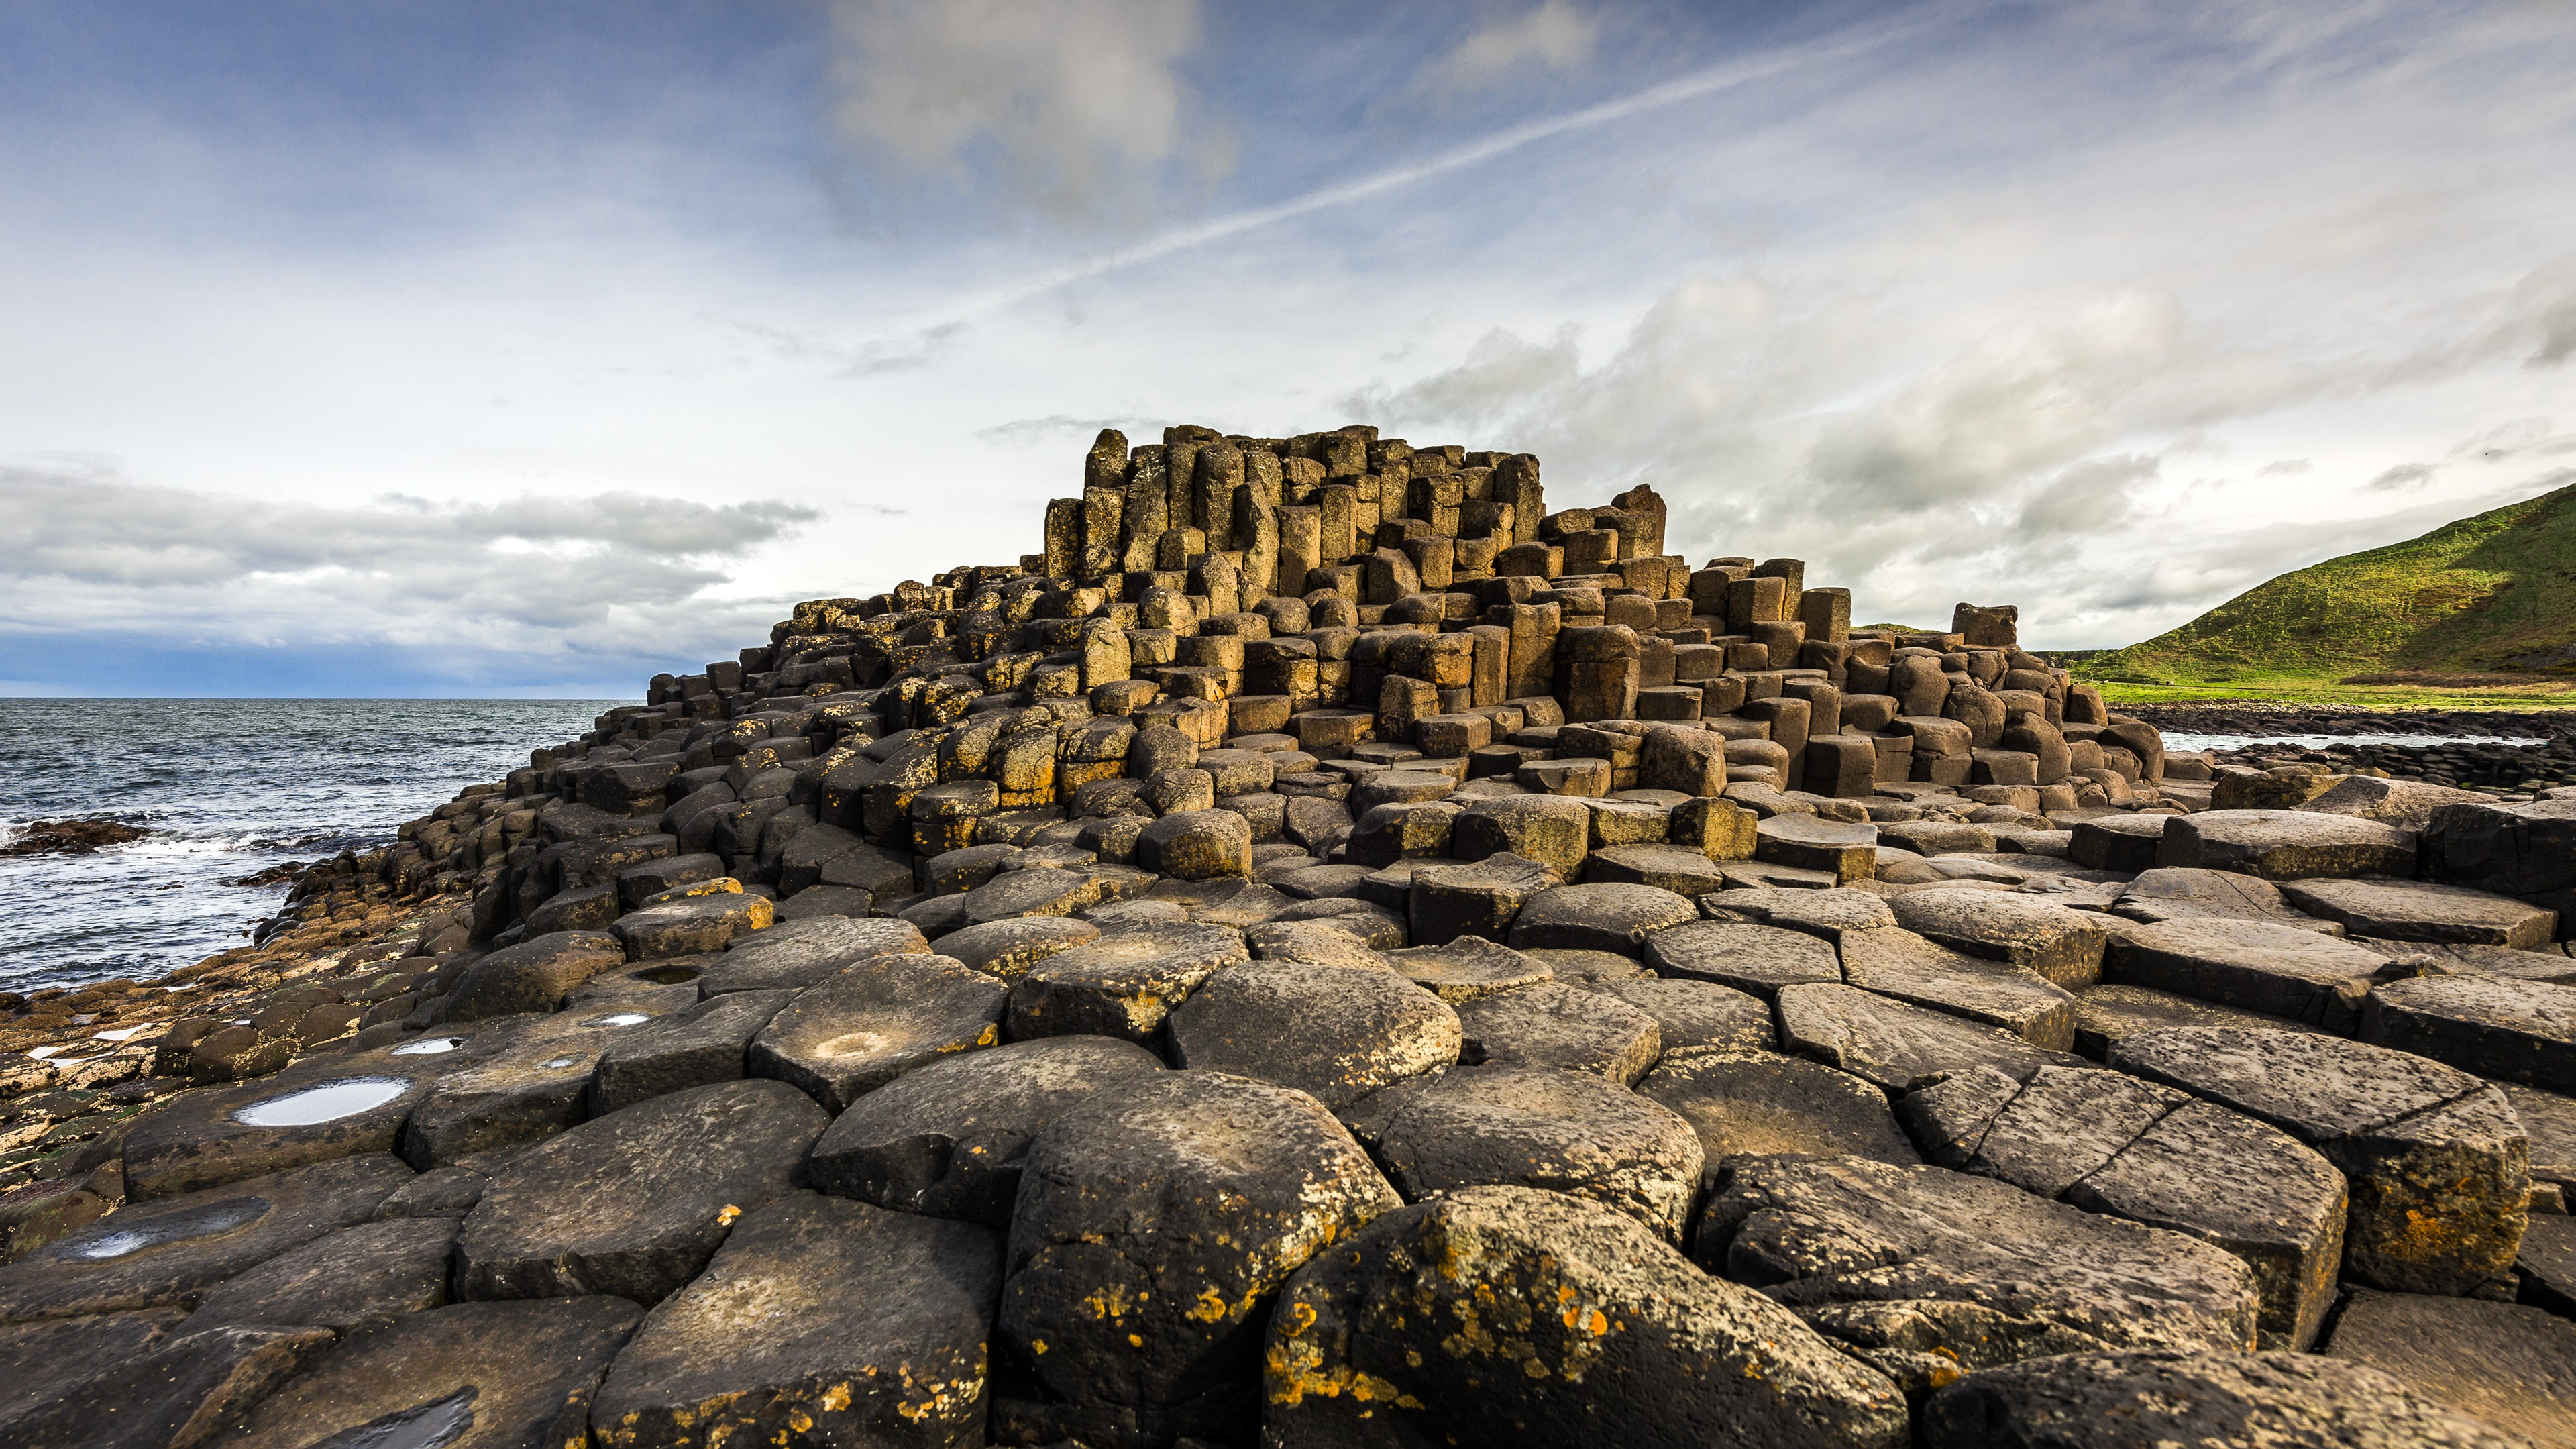 landscape Ireland Rock Formation Giants Causeway Nature 3840x2160